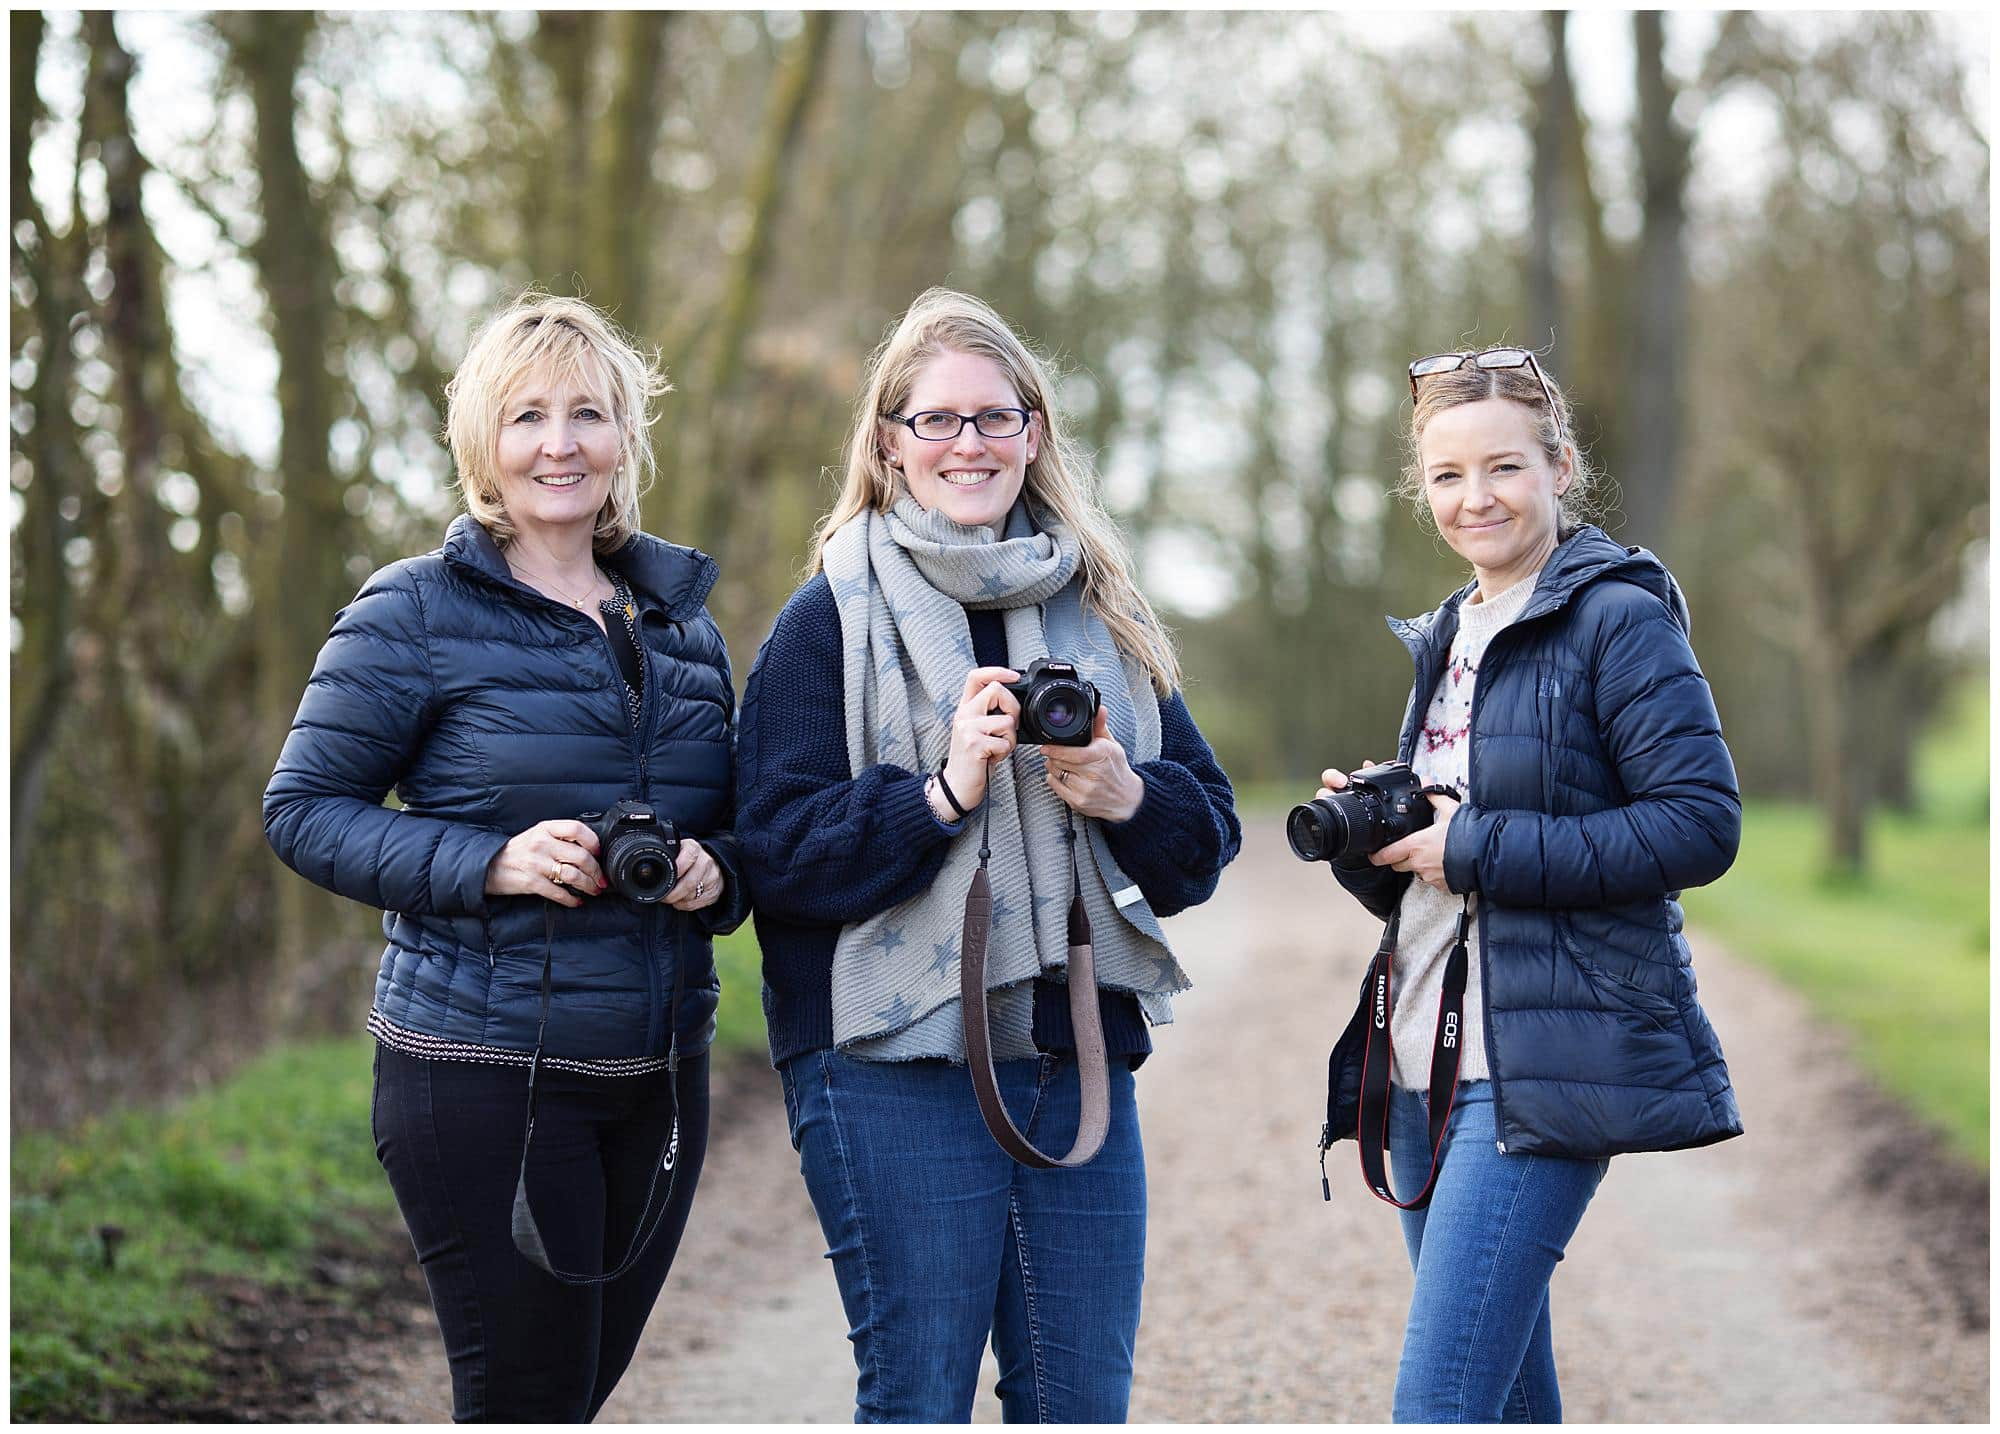 Three Female Photographers holding their camera's during a Beginners Photography Workshop in Stoke By Clare, Suffolk